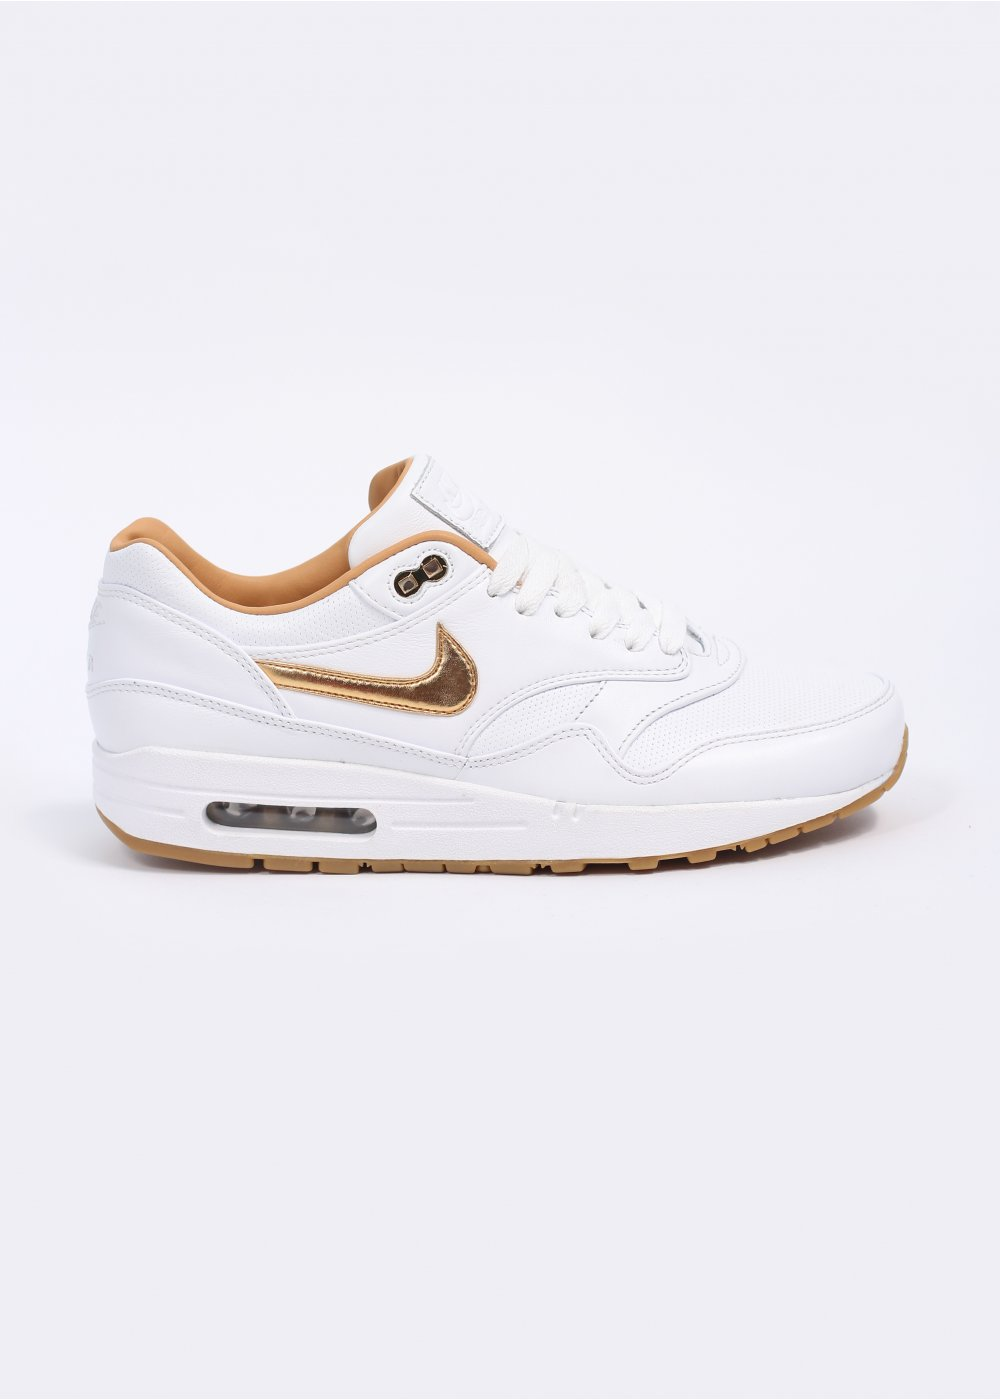 brand new 1d98d 43f2a Air Max 1 FB Woven Trainers - White   Metallic Gold